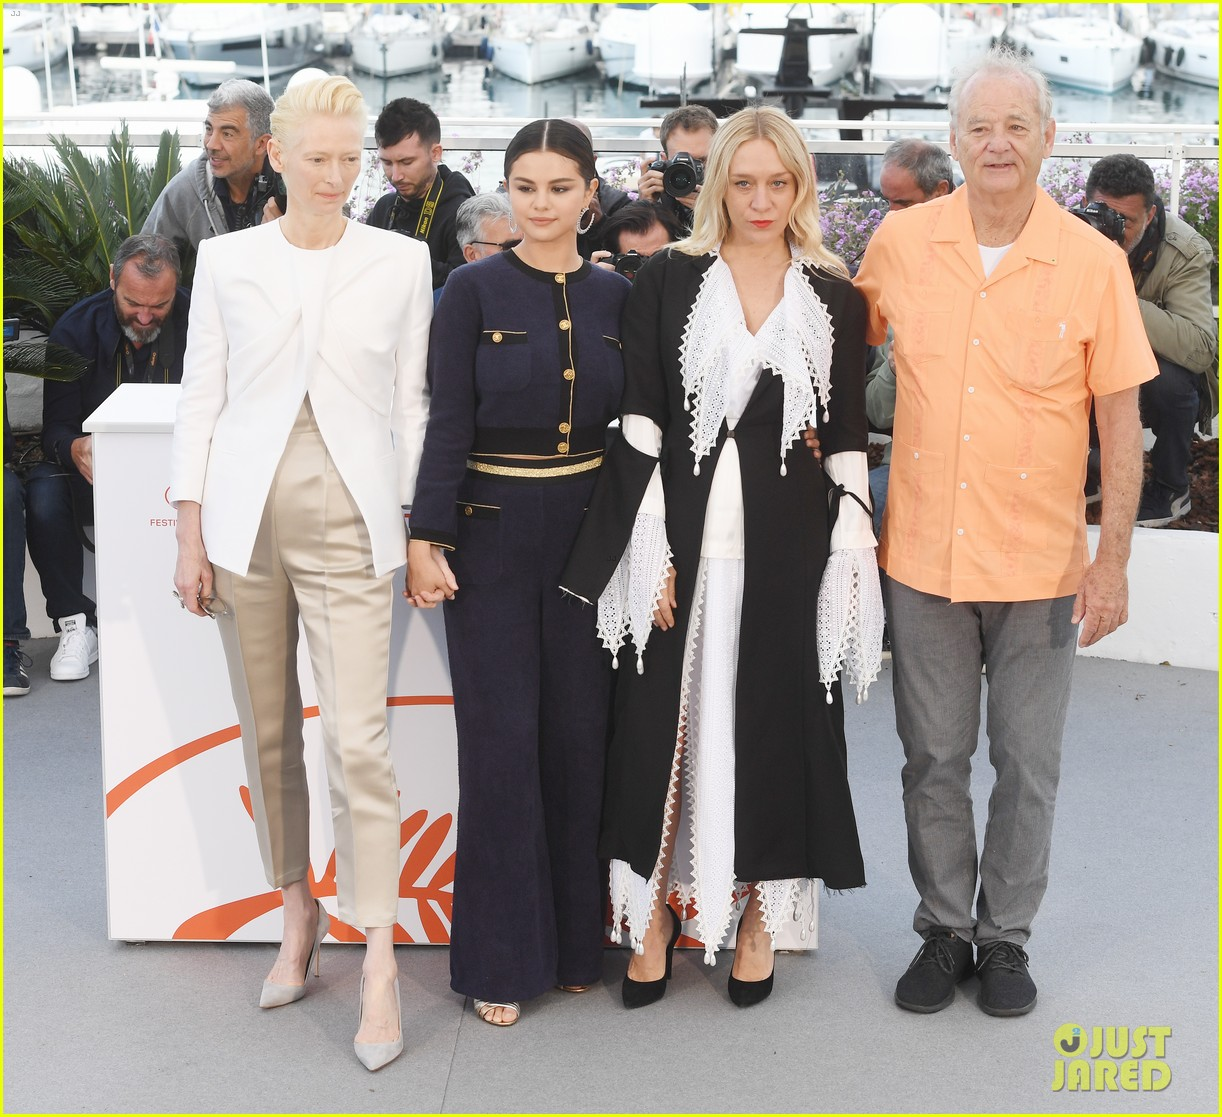 selena gomez joins the dead dont die cast at cannes photo call 054291569